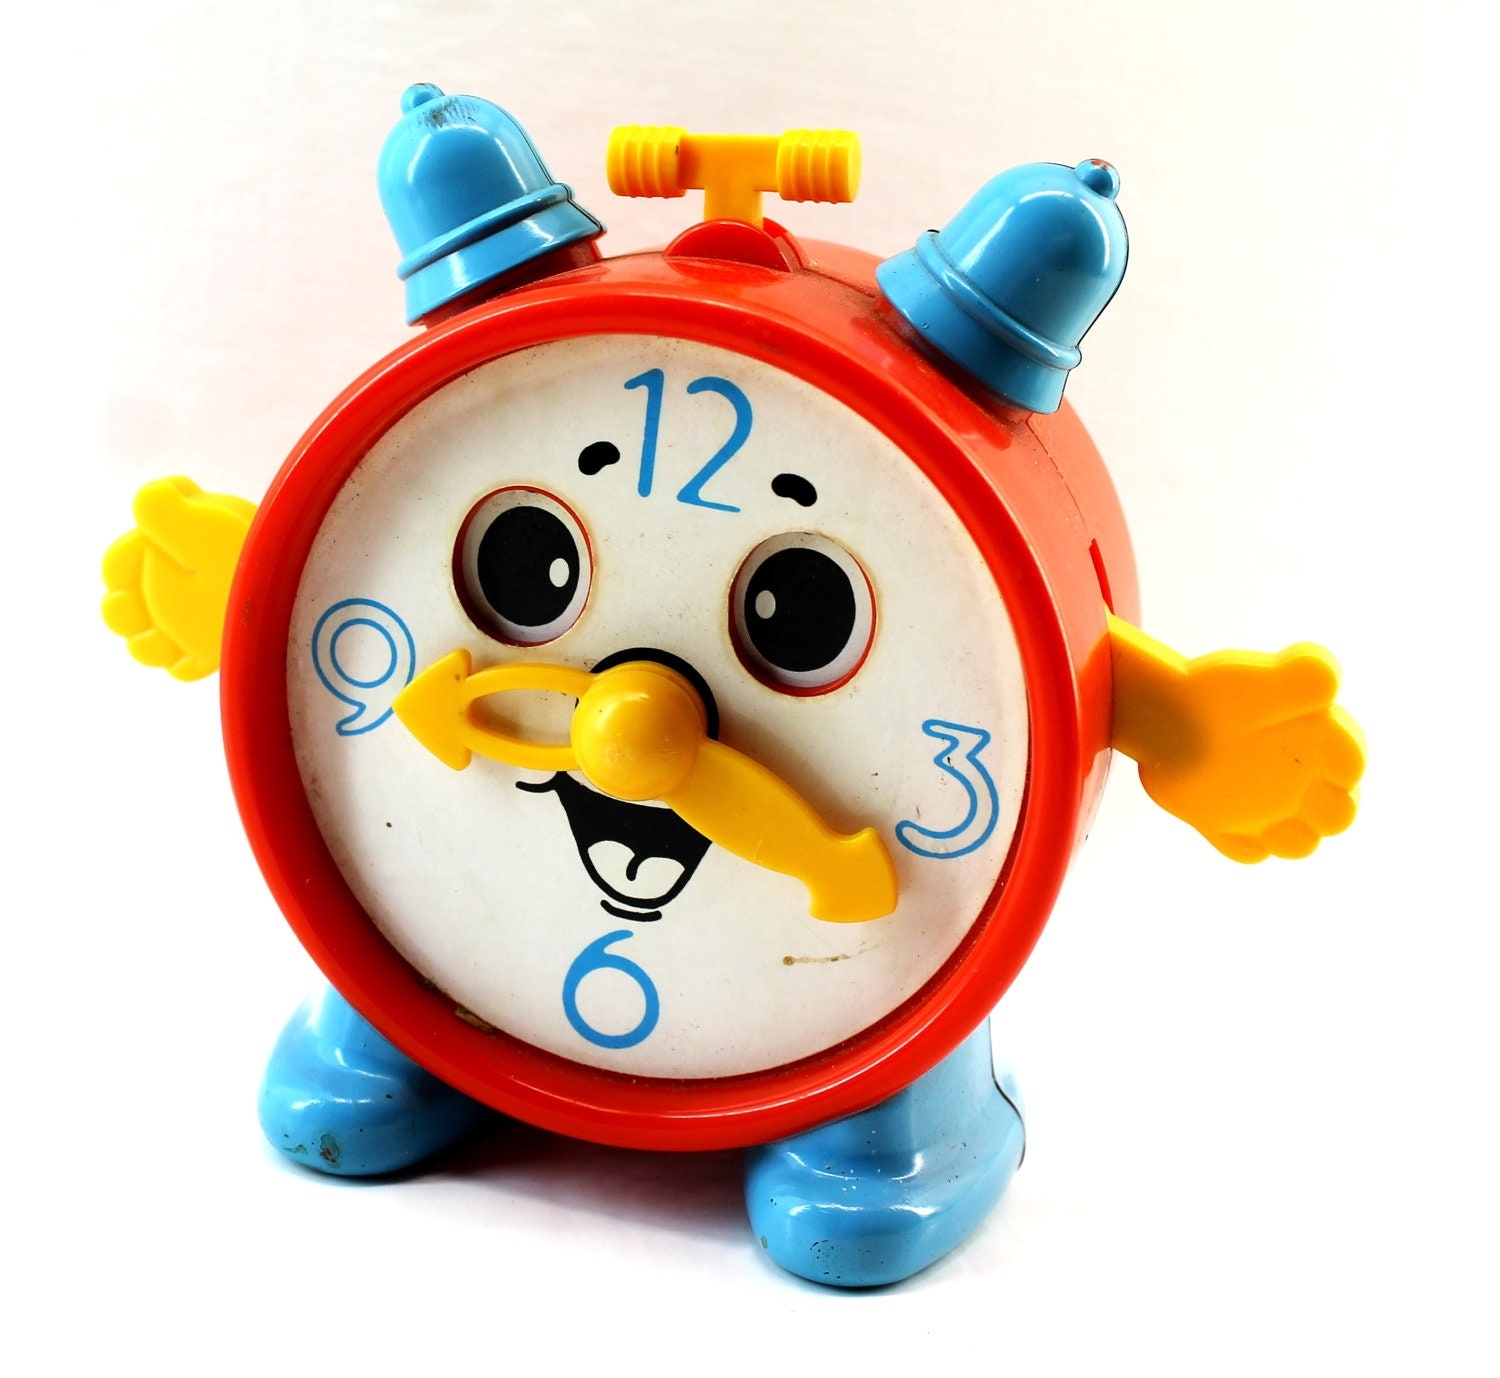 1016 moreover 262823913475 furthermore Vintage Toy Red Wind Up Alarm Clock By together with Syahidfyp blogspot further Storm On La Palma. on wave alarm clock